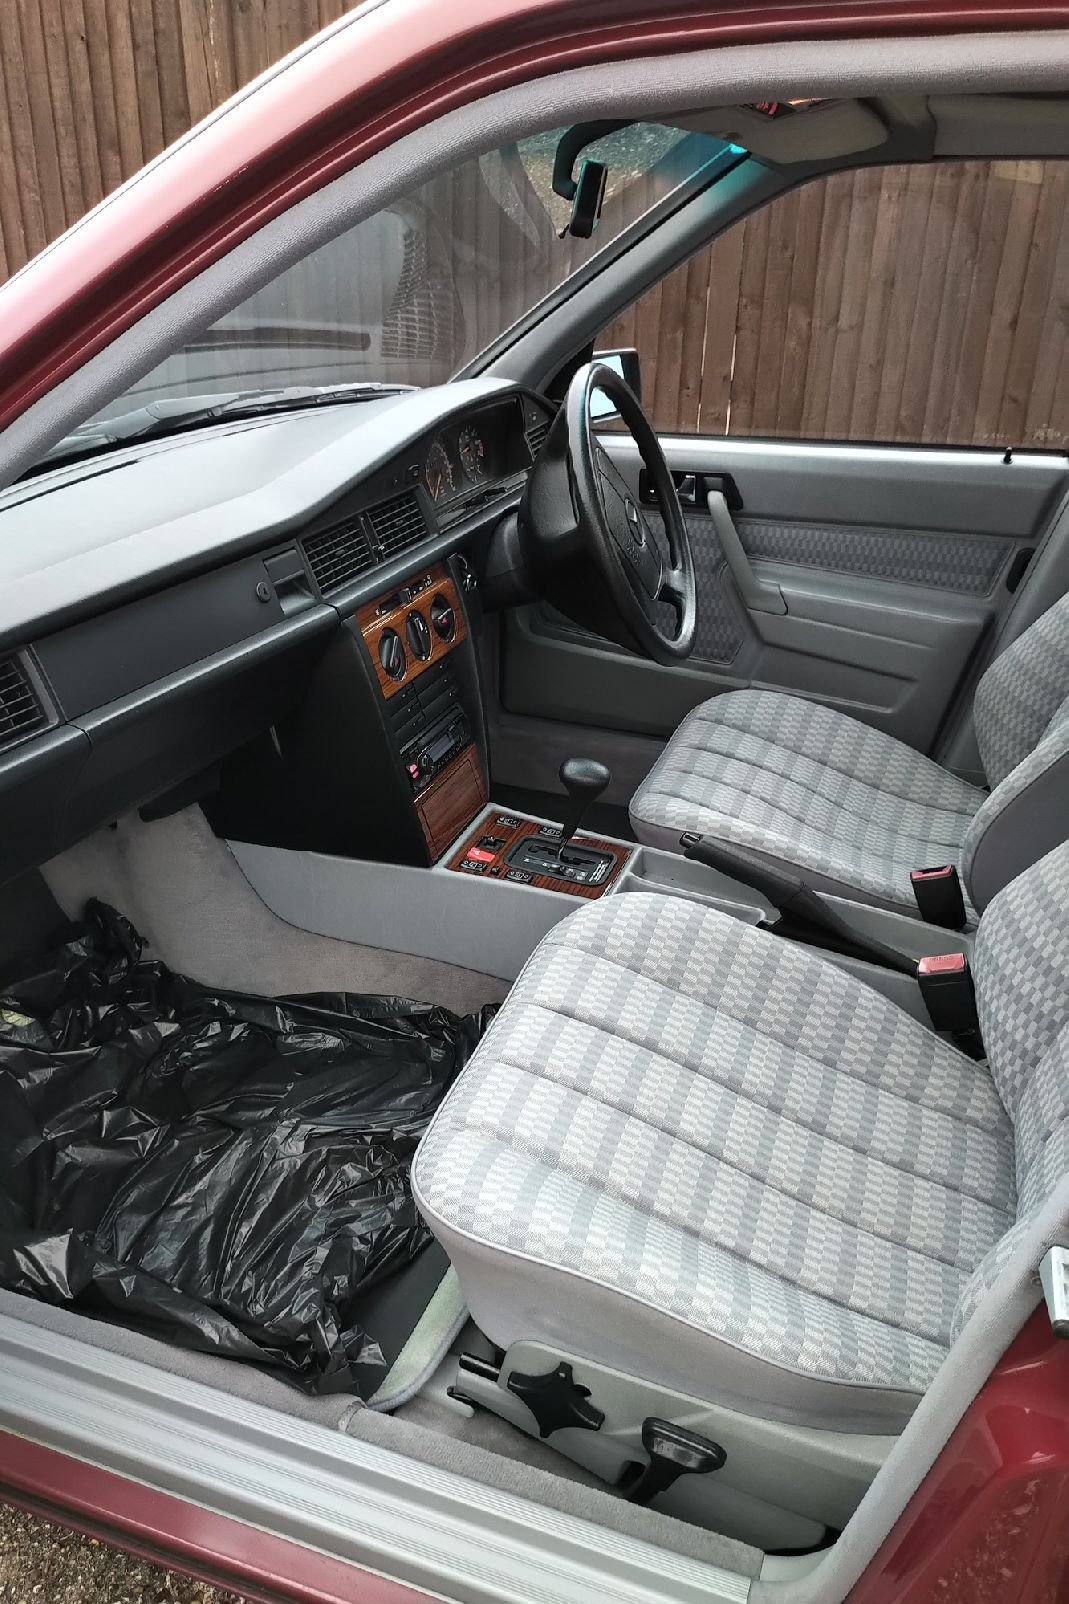 1992 Mercedes-Benz 190E, 12 Months MOT Lovely Cherished SOLD (picture 5 of 6)